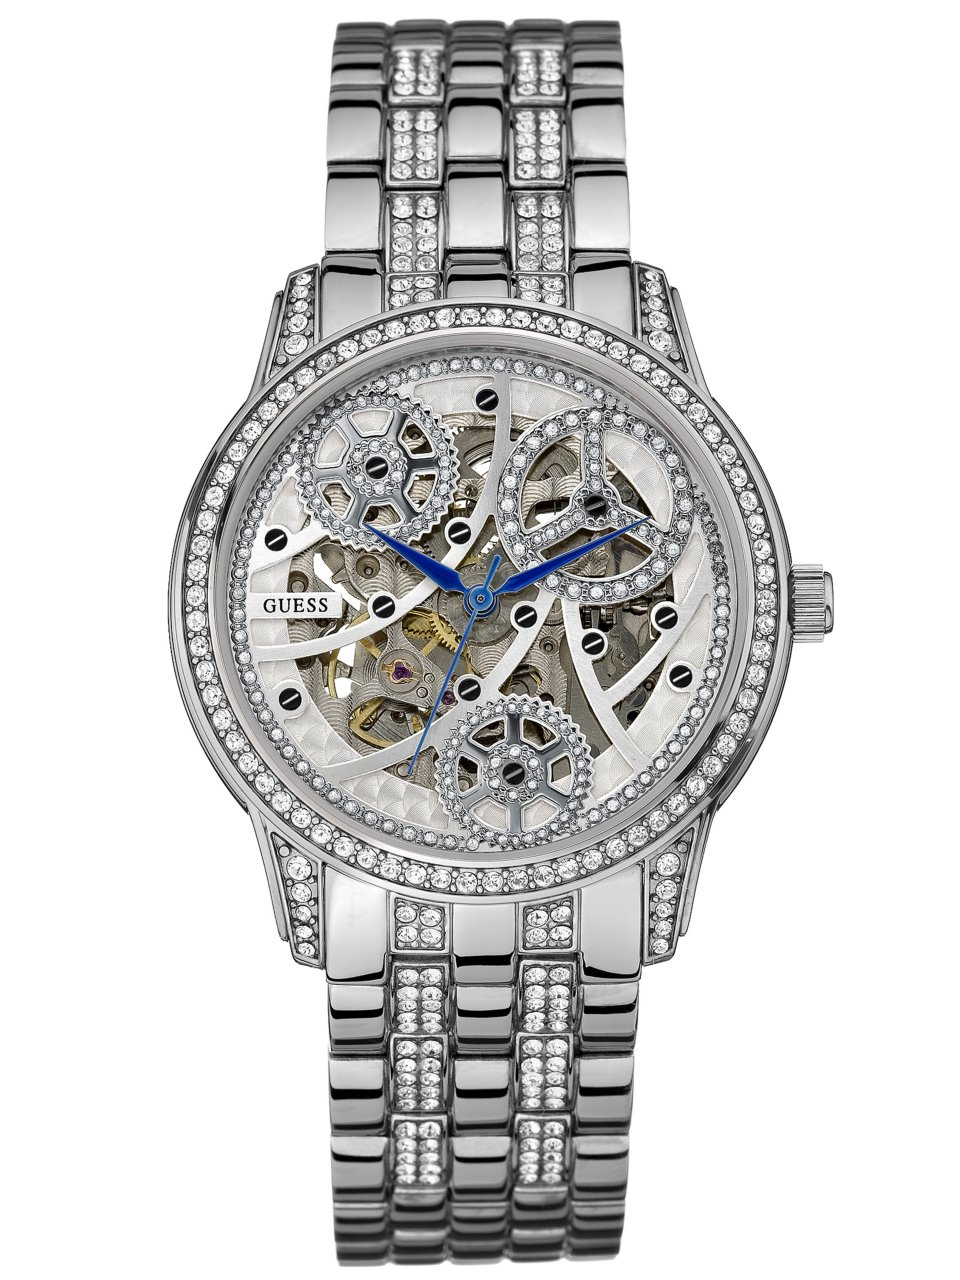 GUESS Elegant Automatic Watch